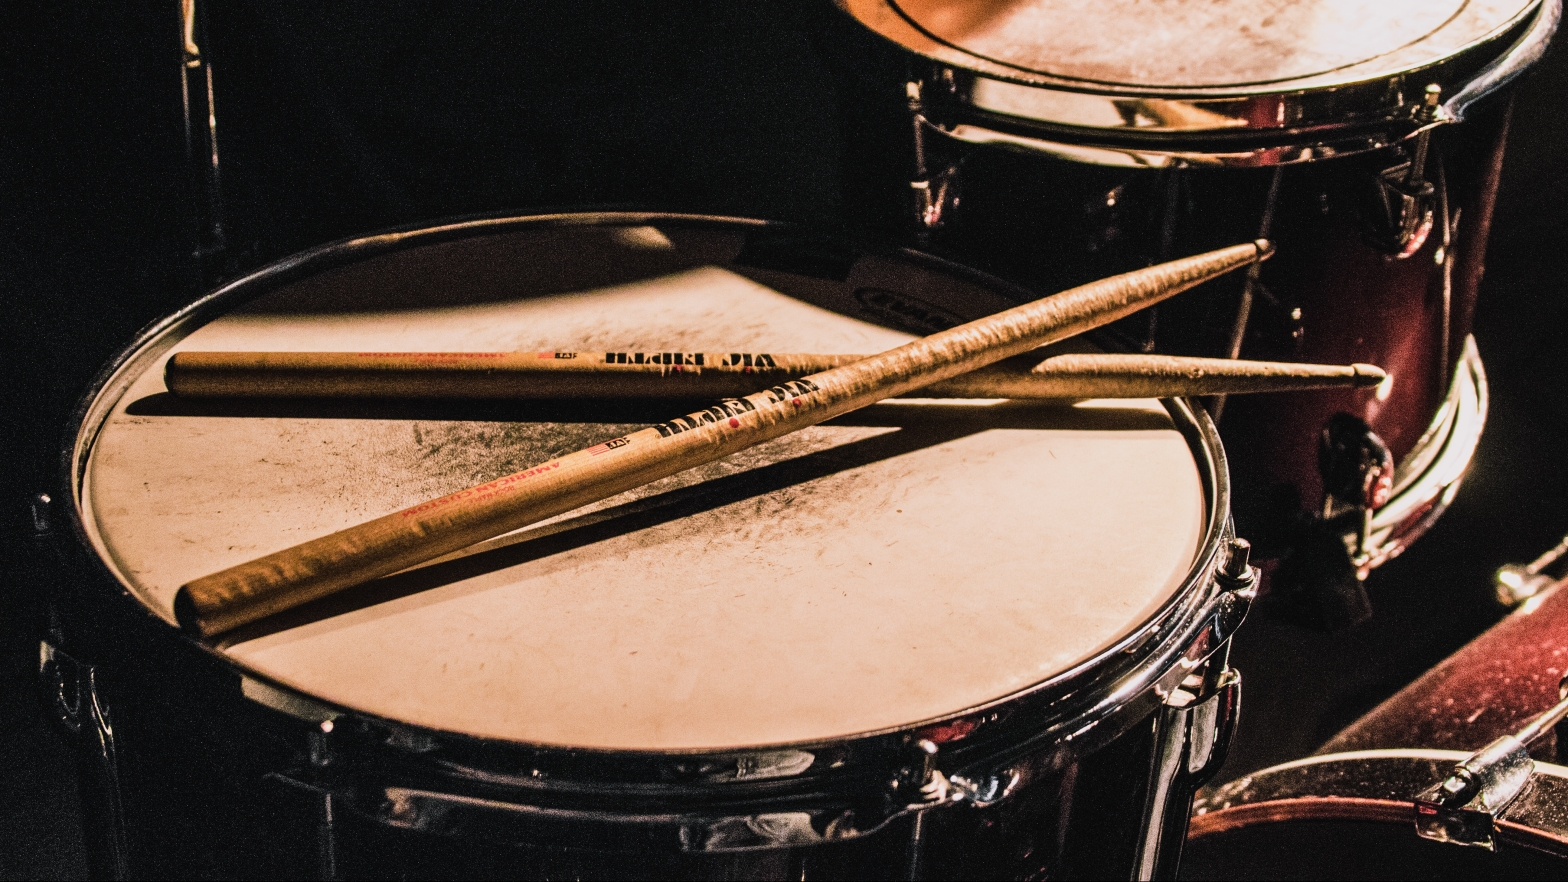 Image is a photo of a set of well used drums with somewhat battered looking sticks laid on the snare